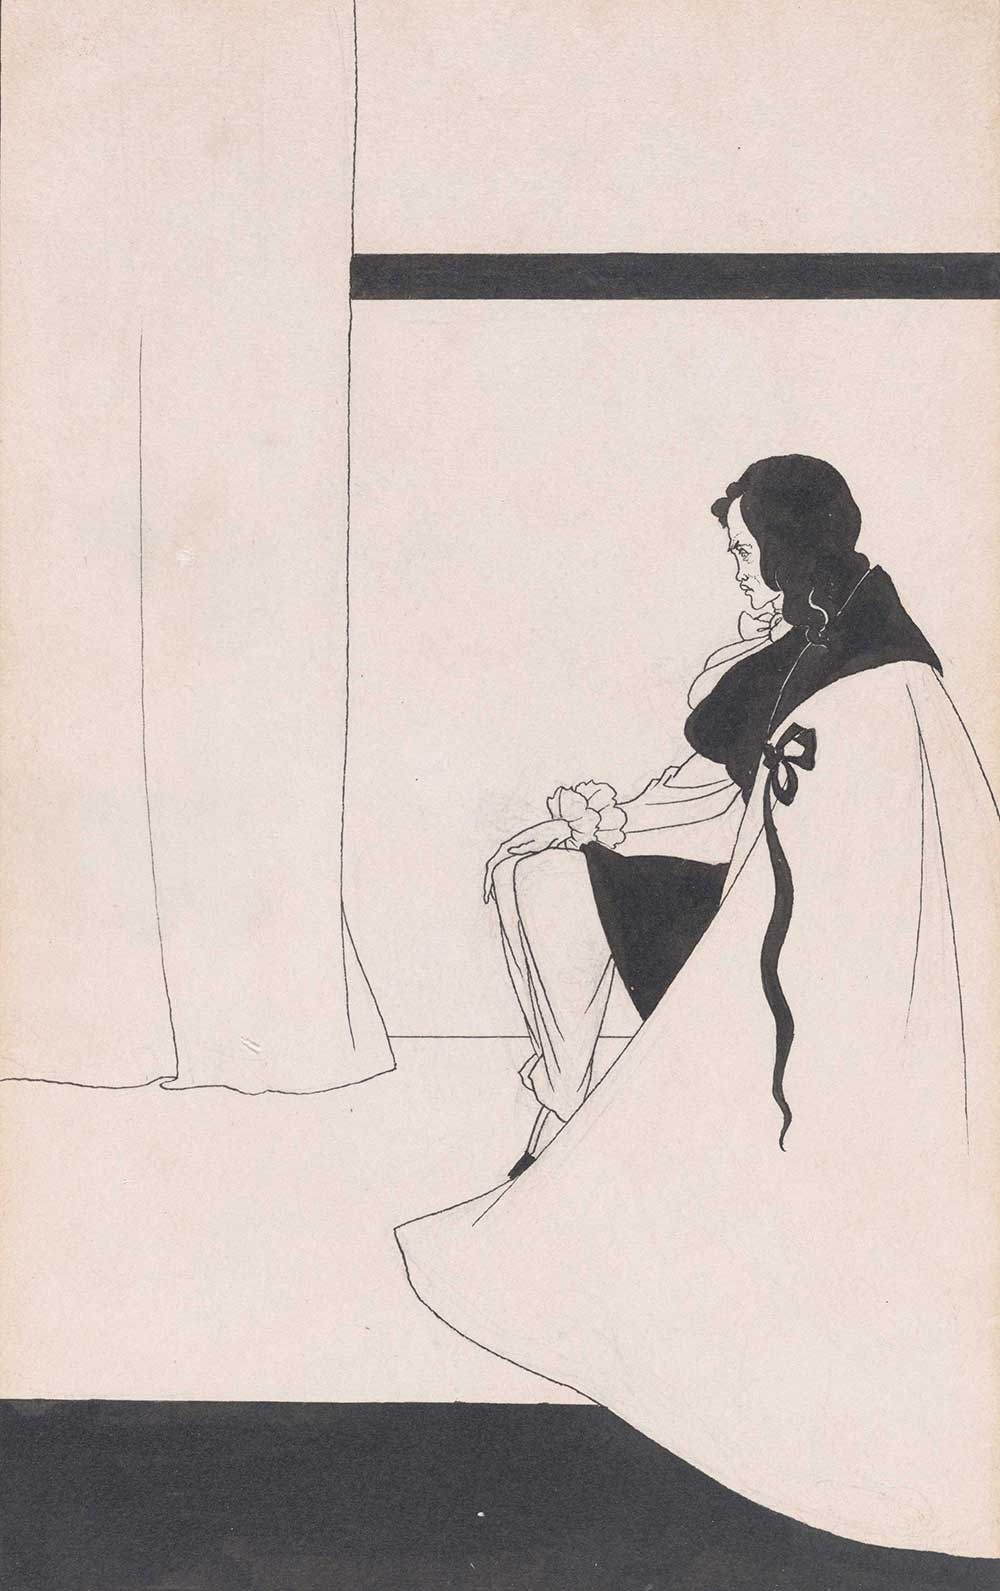 The Fall of the House of Usher, by Aubrey Beardsley, 1894.